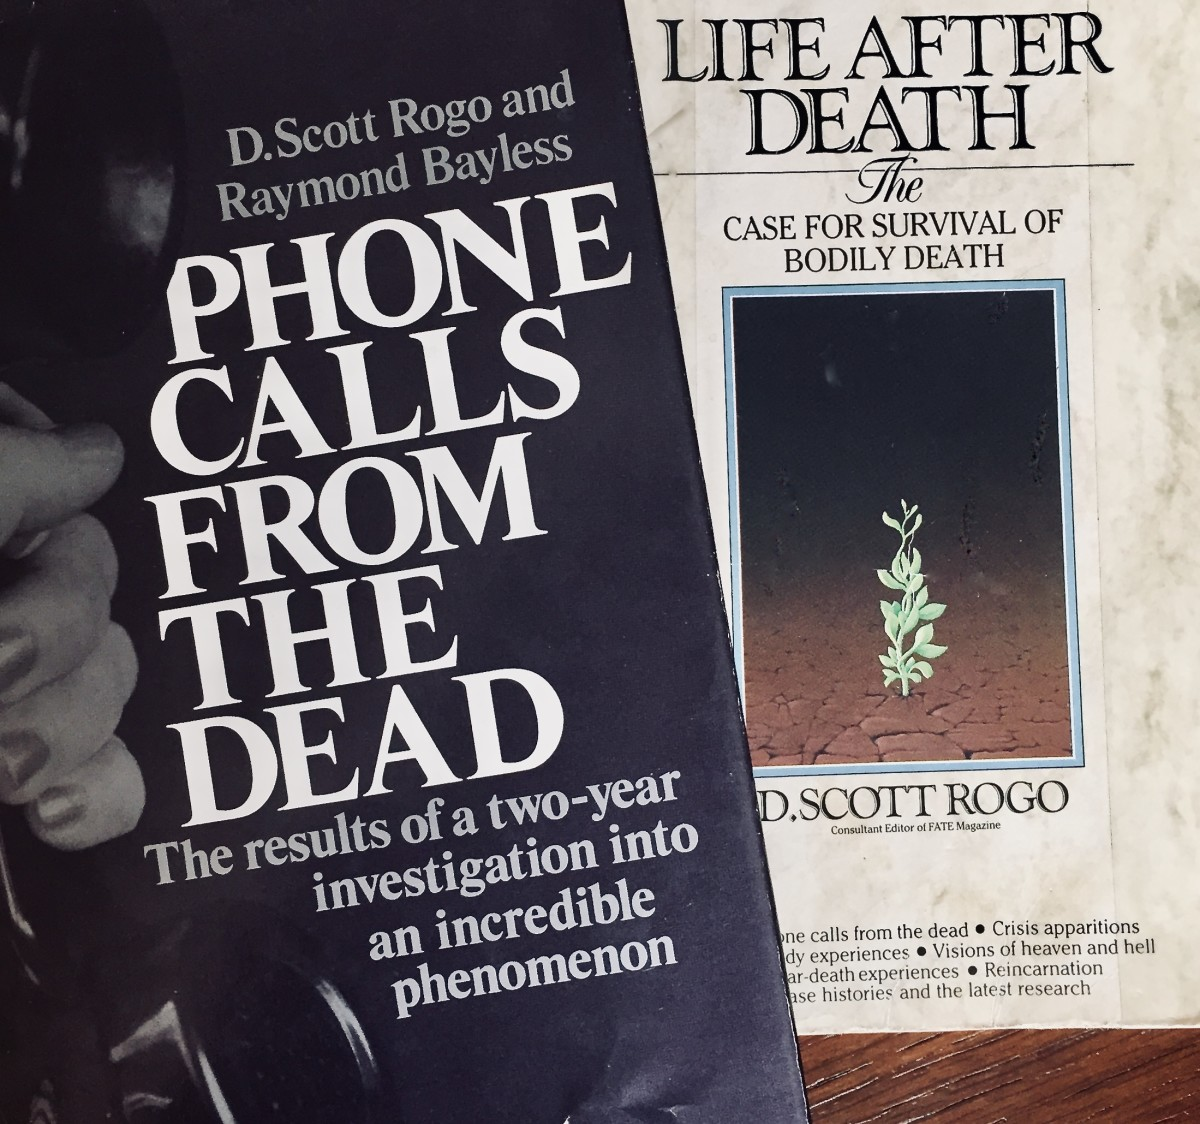 """Phone Calls From the Dead"" by D. Scott Rogo and Raymond Bayless, and ""Life After Death"" by D. Scott Rogo."